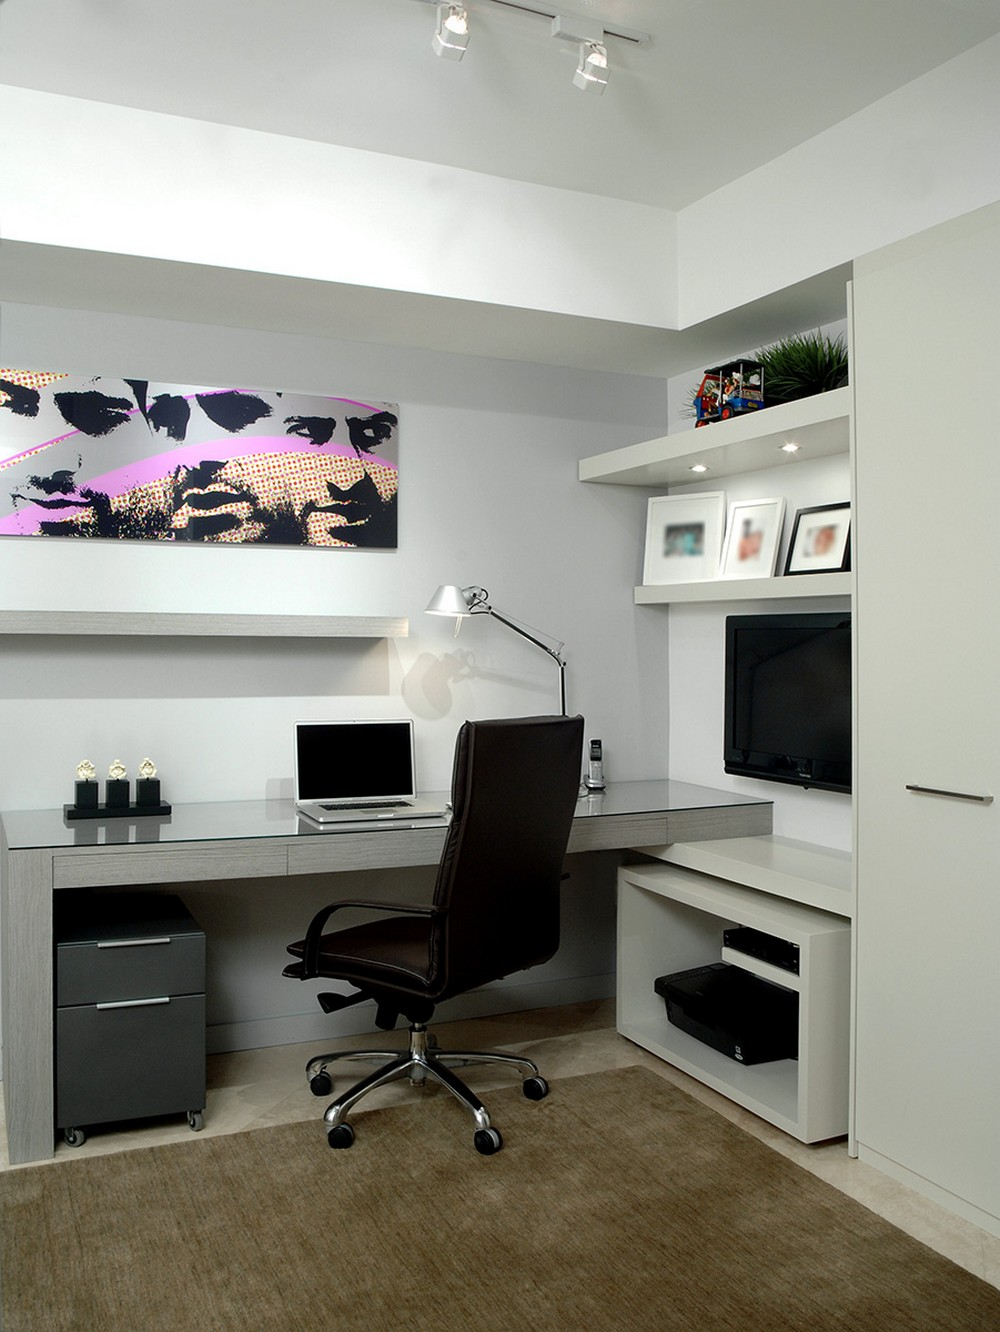 18 Awe-Inspiring Home Office Designs full of Colors and Textures 8